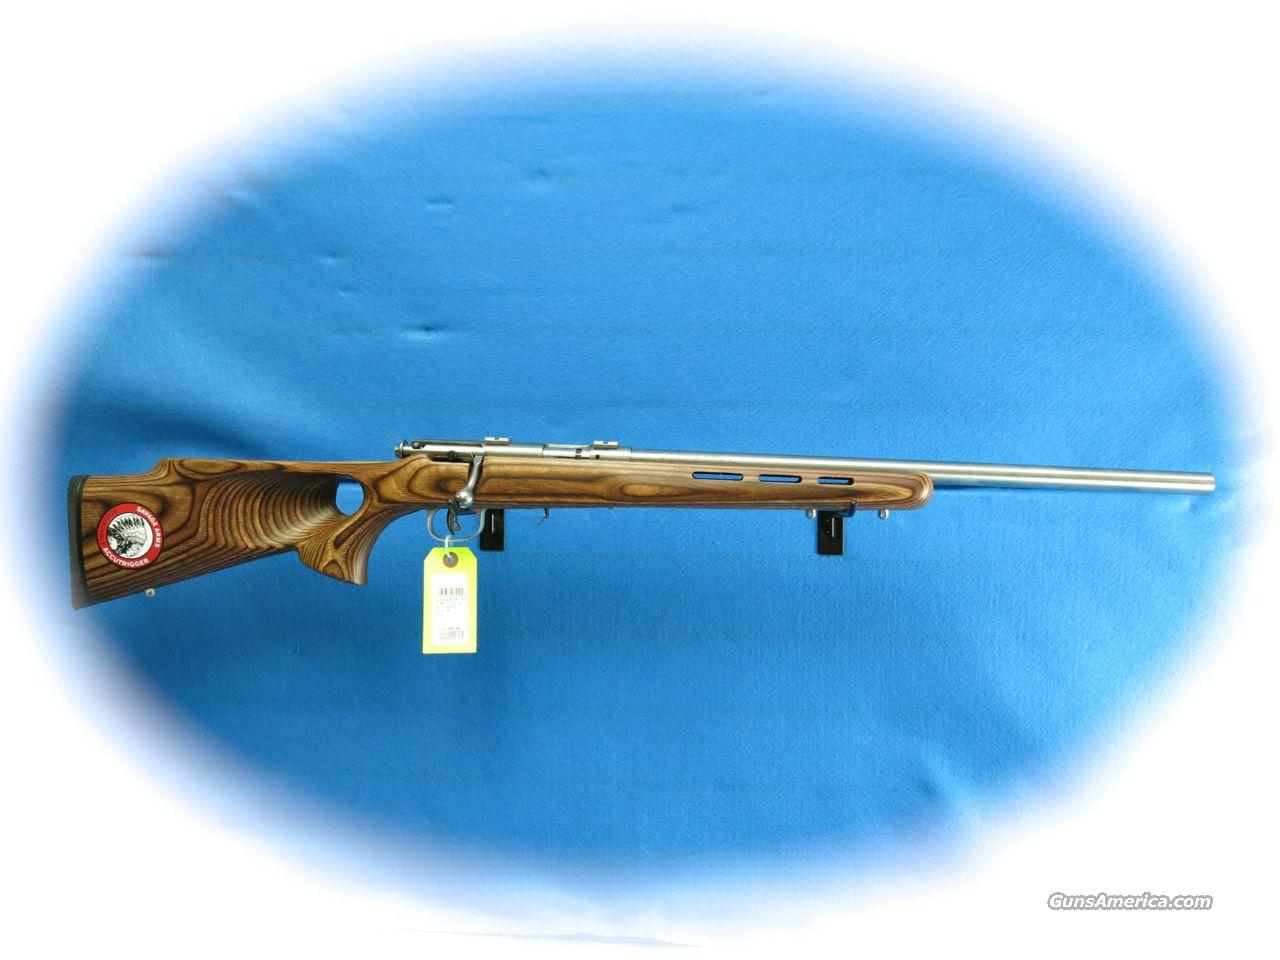 Savage Model 93R17 BTVS .17 HMR Bolt Action Rifle Lam Stock **New**  Guns > Rifles > Savage Rifles > Accutrigger Models > Sporting